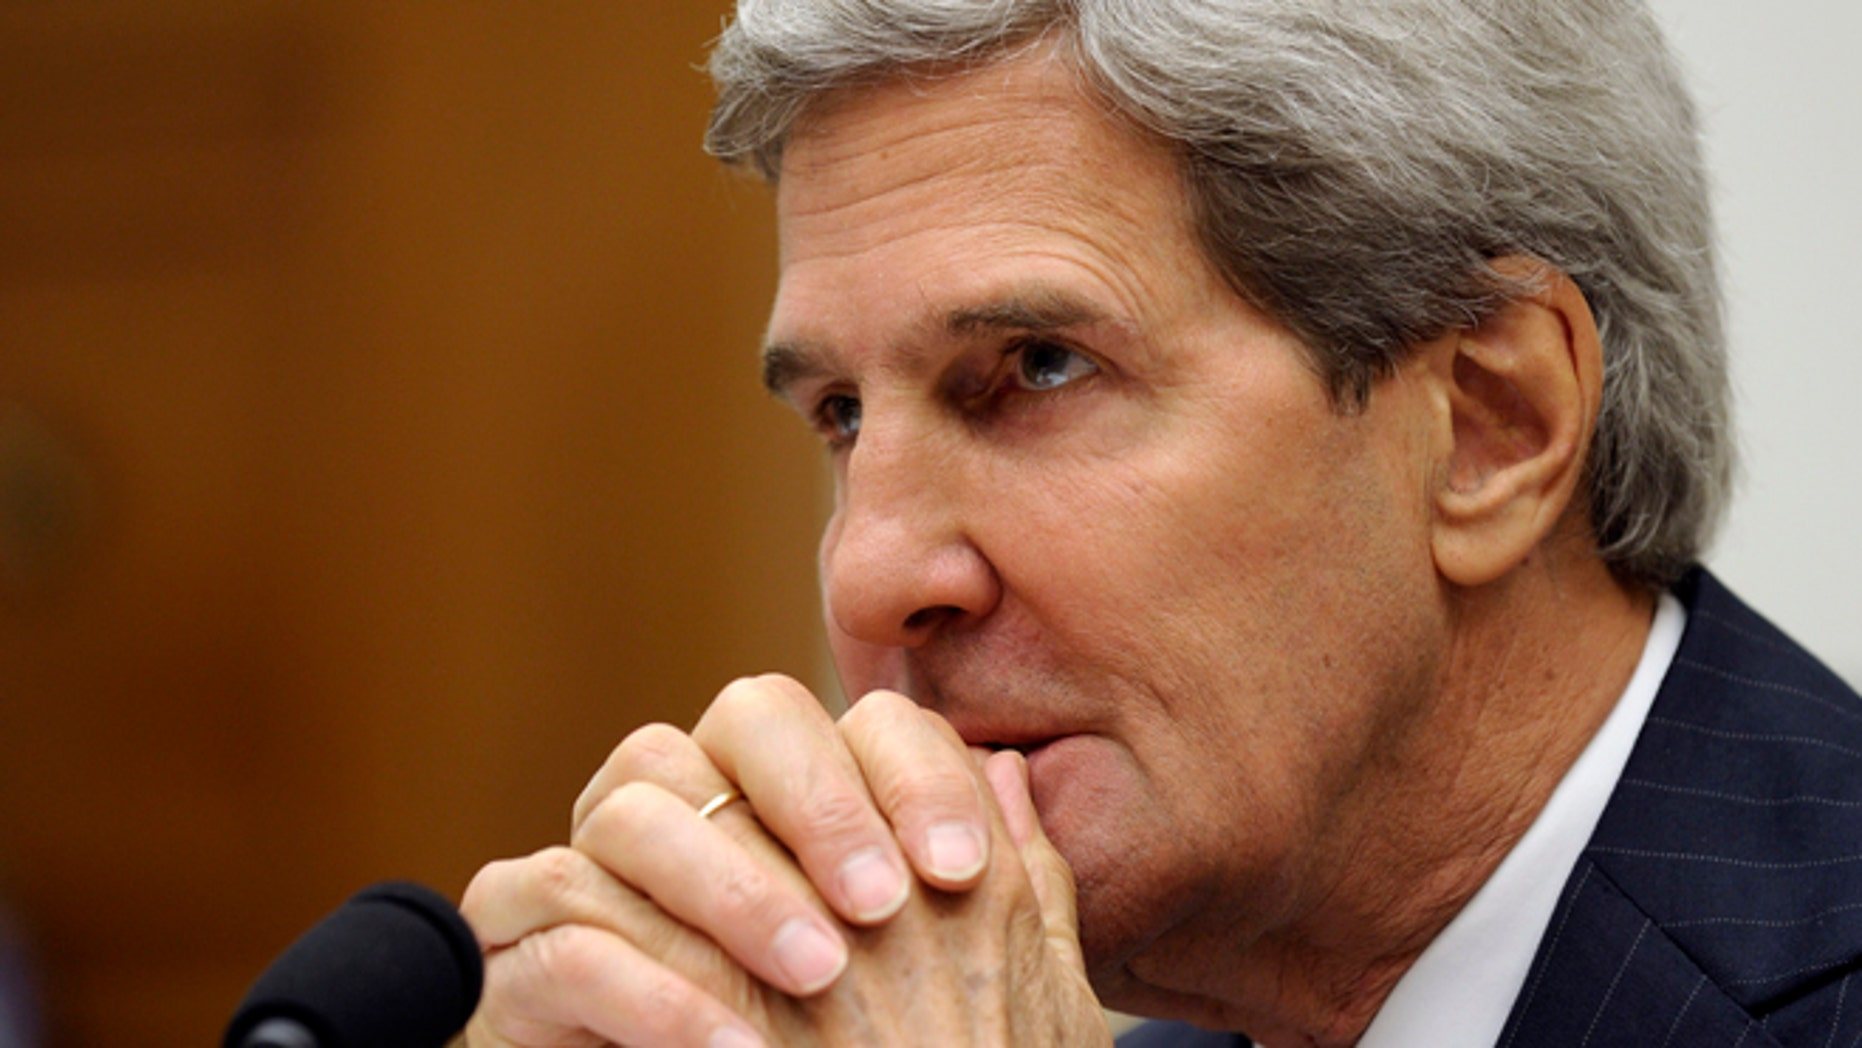 FILE: Sept. 10, 2013: Secretary of State John Kerry waits to testify on Capitol Hill in Washington, D.C.